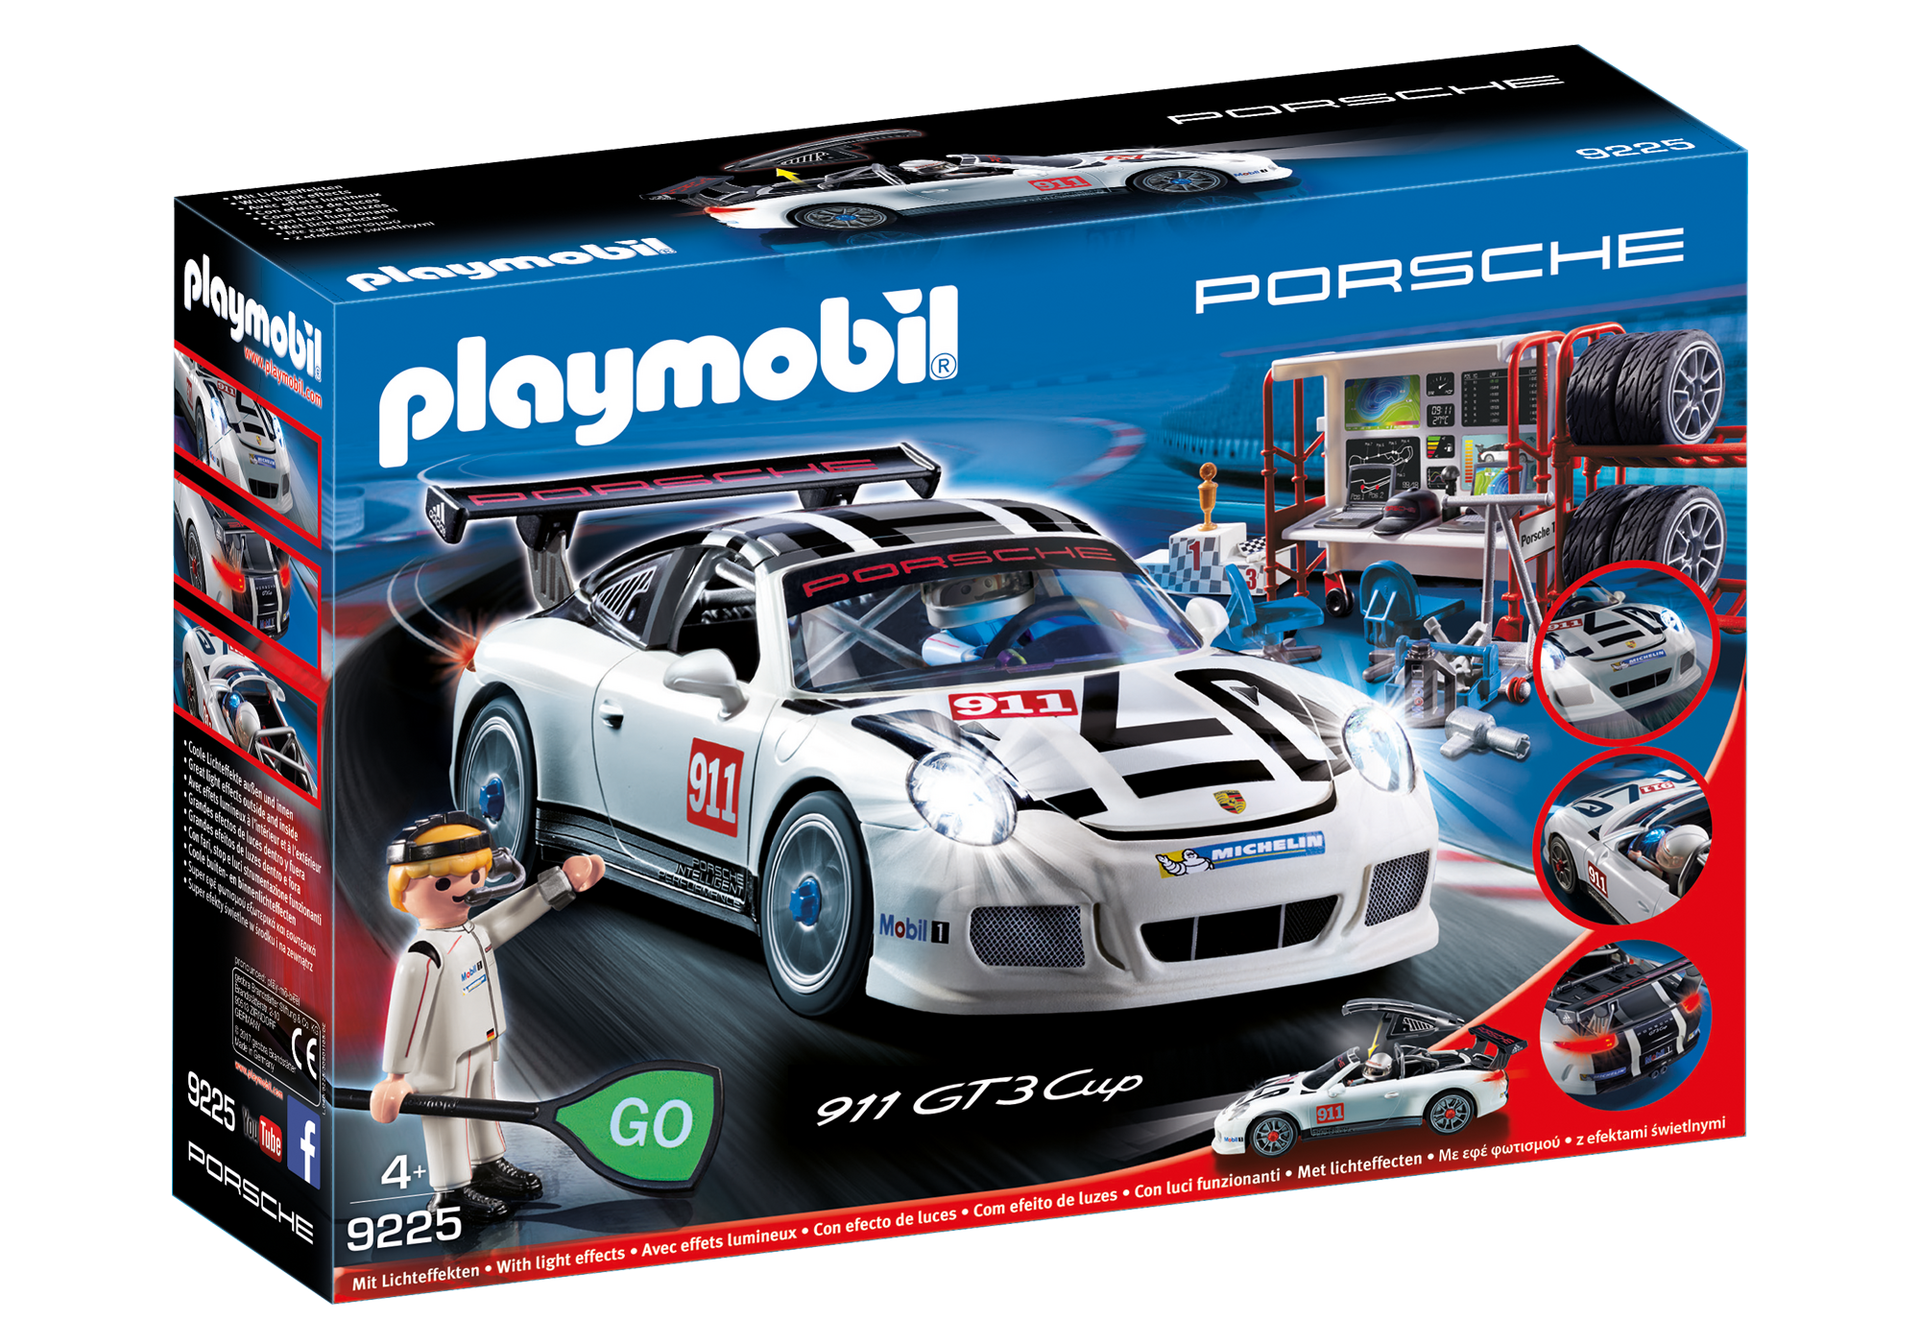 Porsche 911 Gt3 Cup 9225 Playmobil Northern Europe Finland